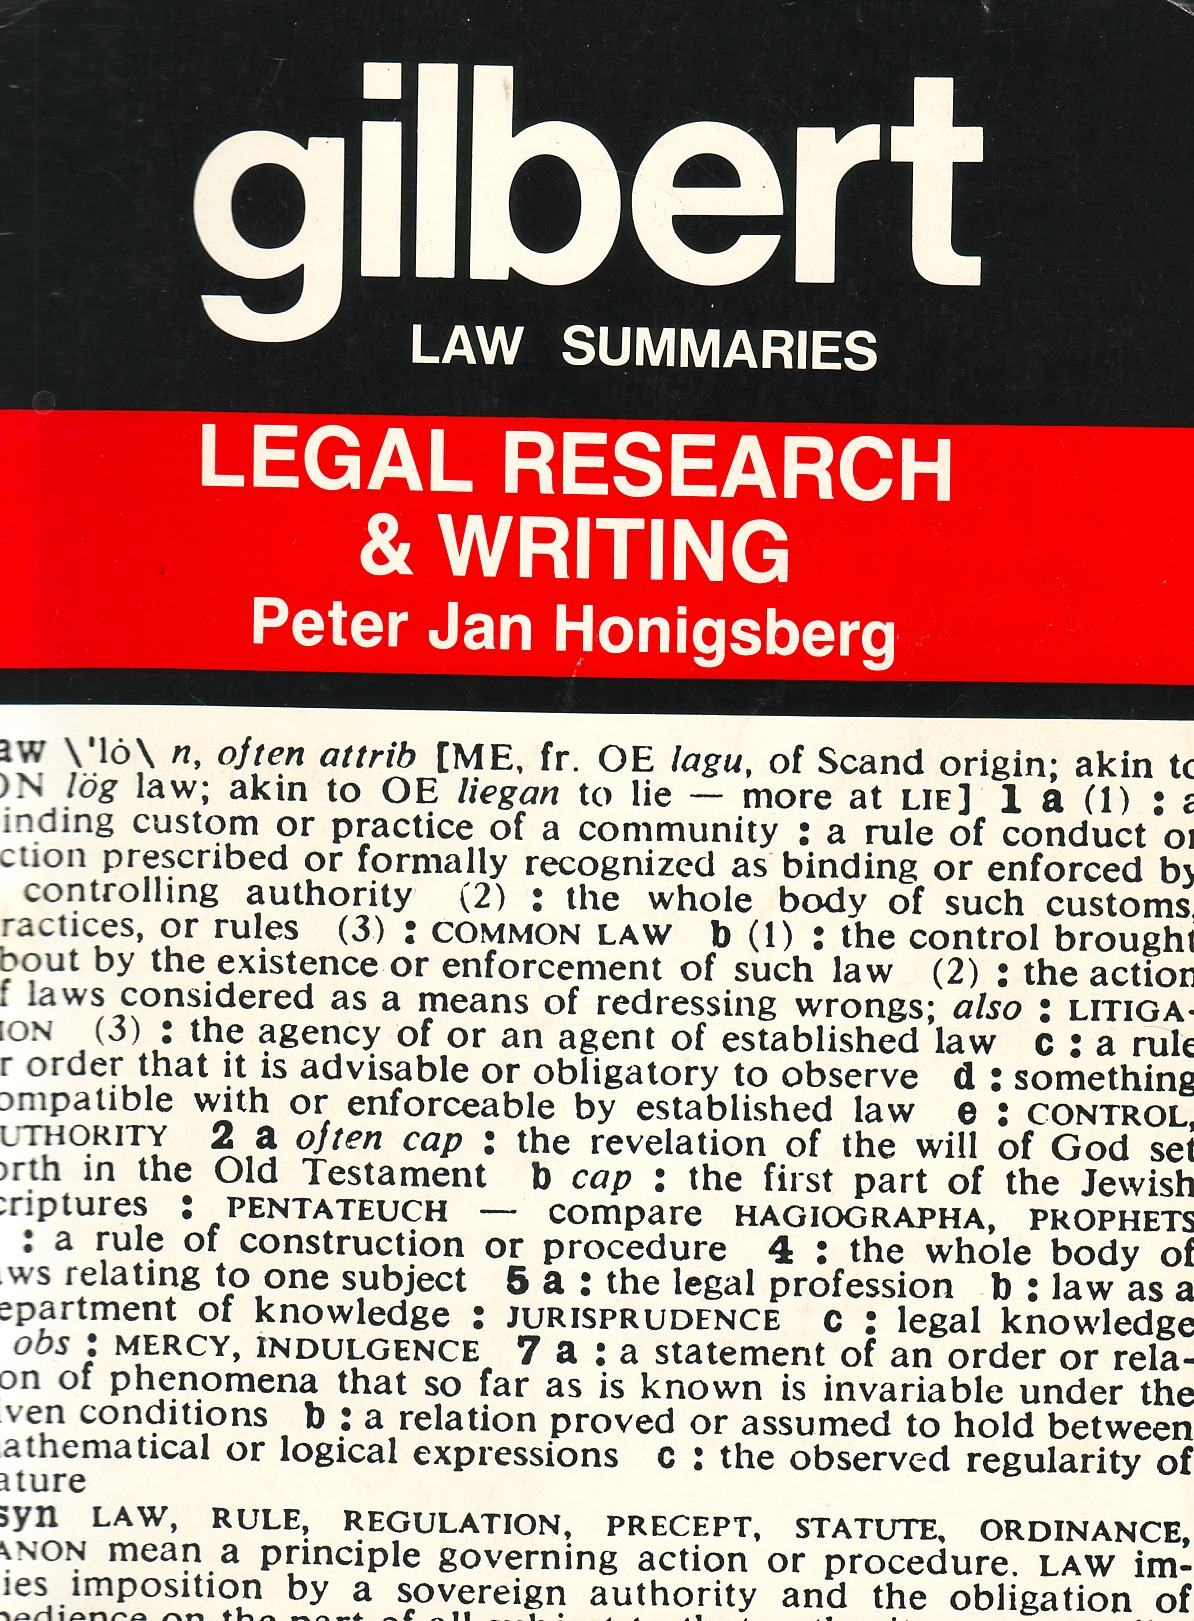 Gilbert Law Summaries Legal Research & Writing